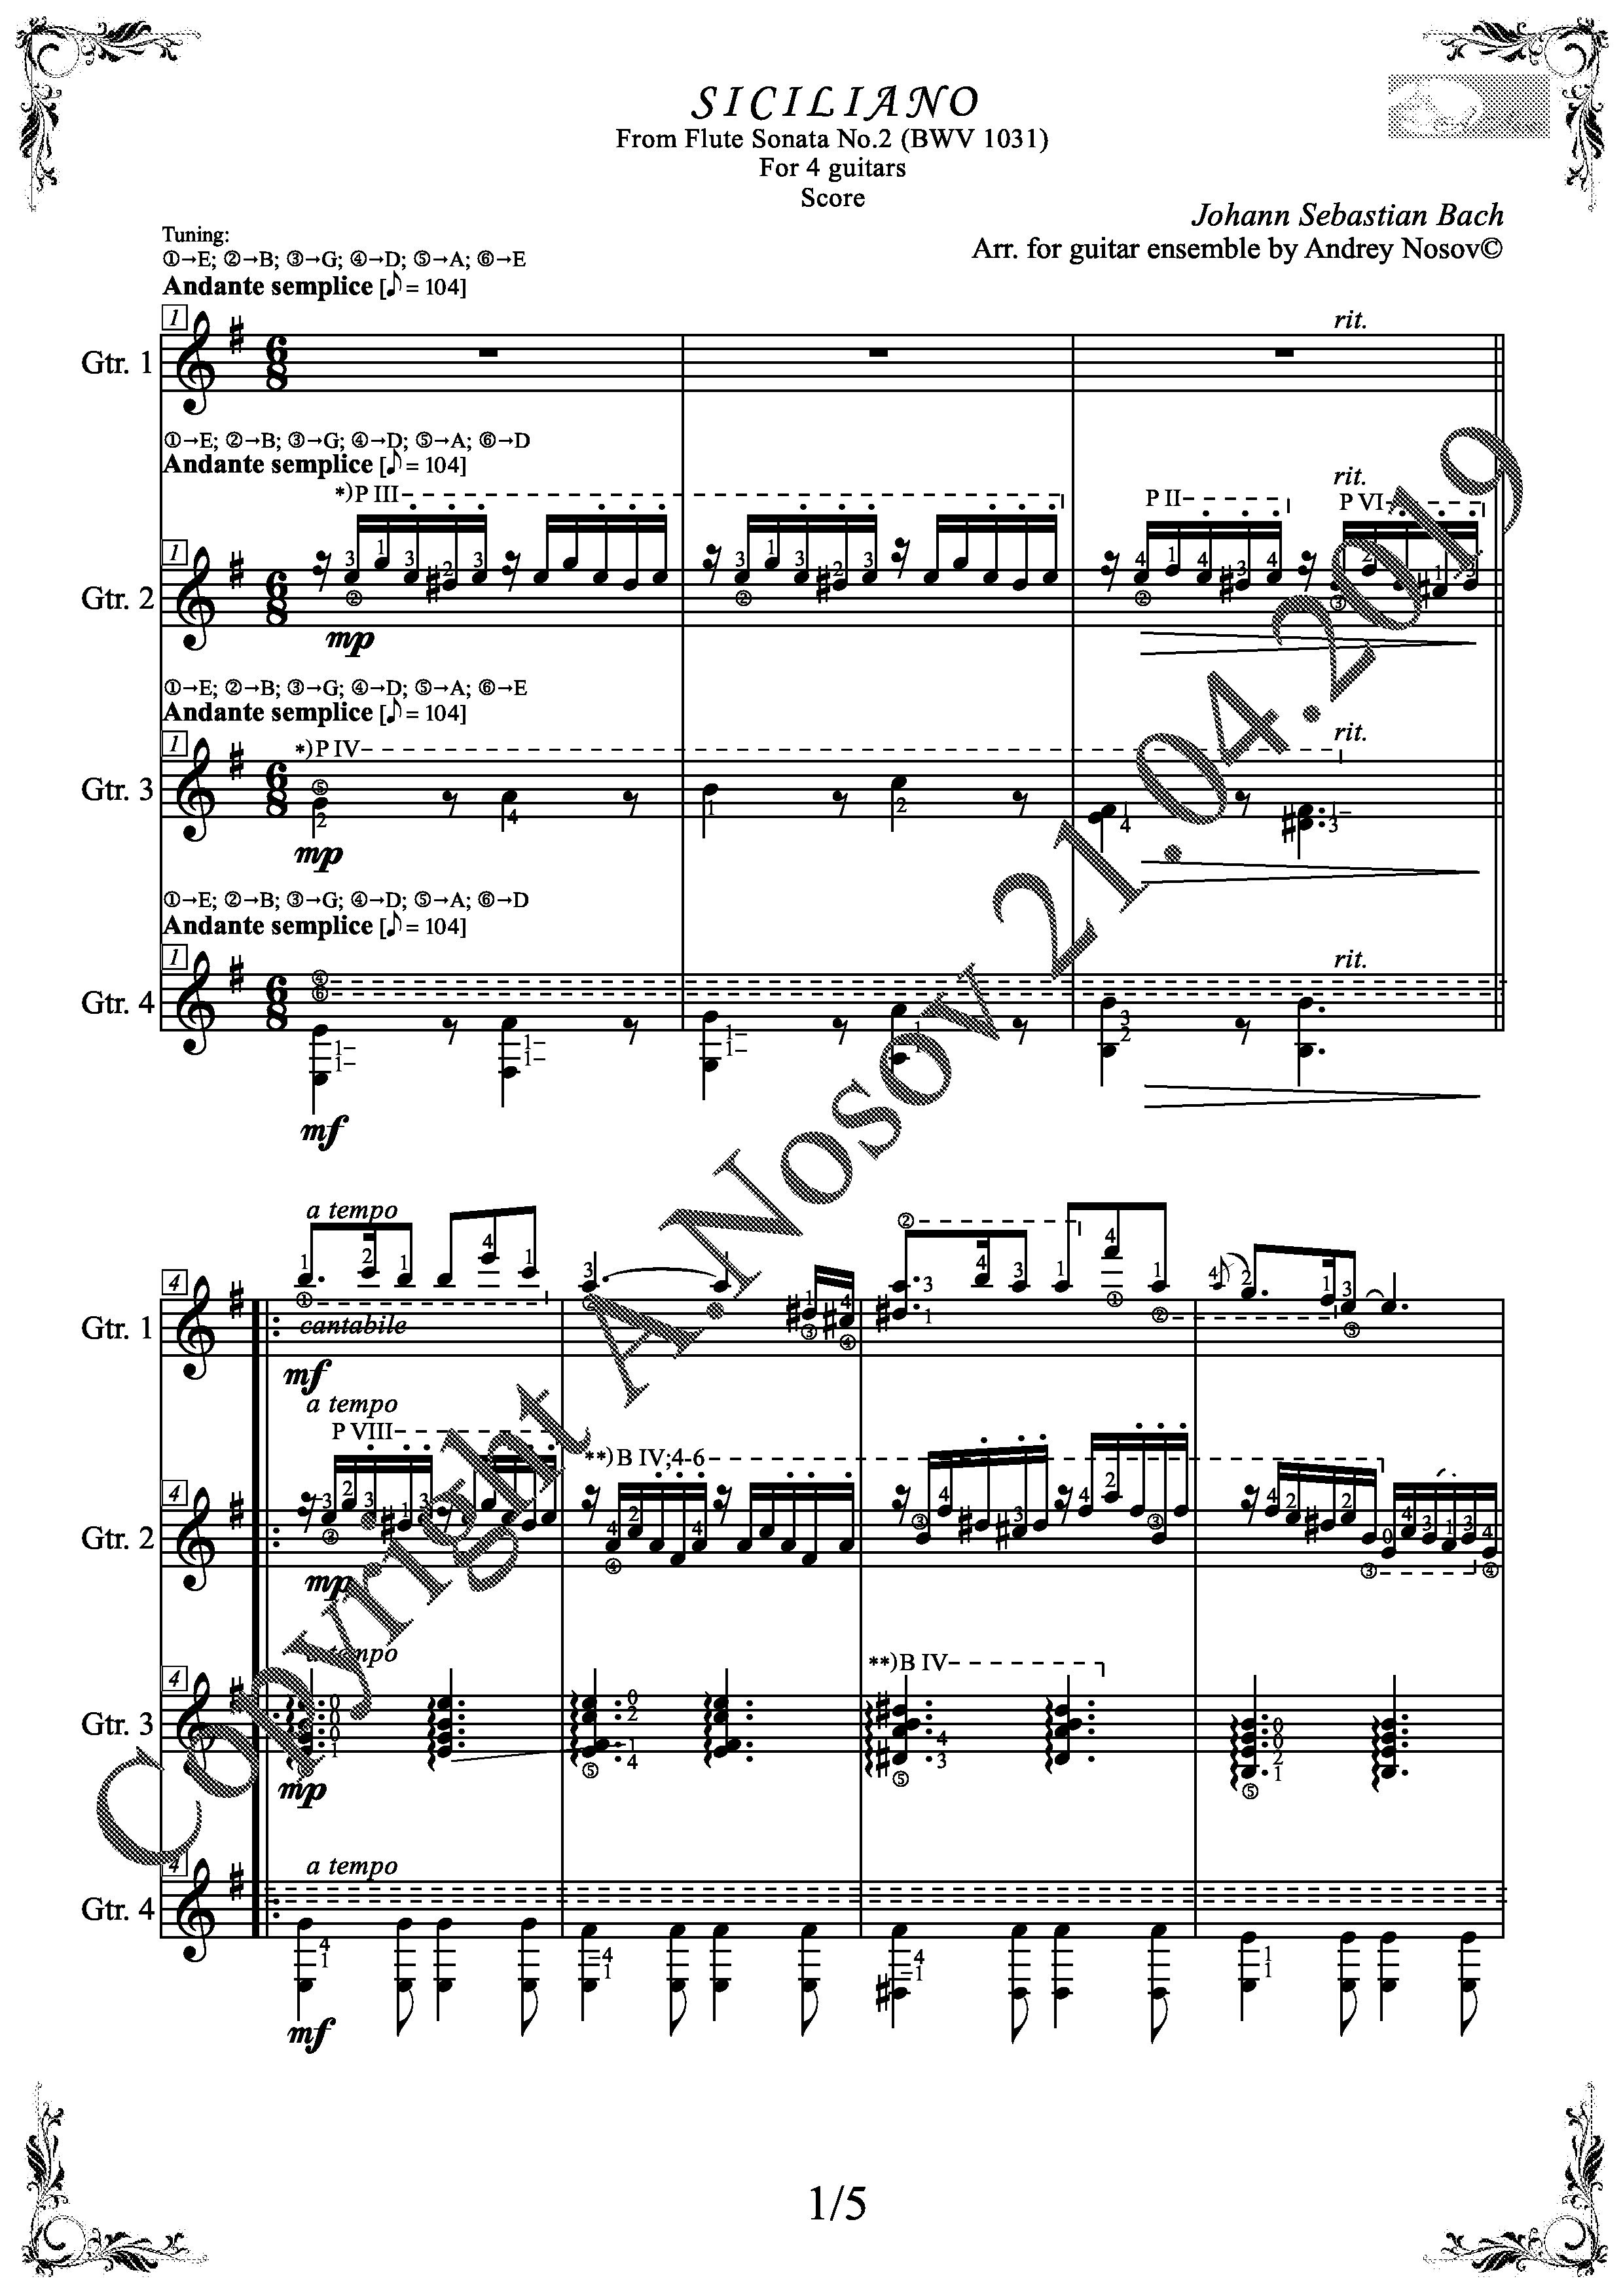 Siciliano_J.S.Bach (Sheet Music for 4 guitars)